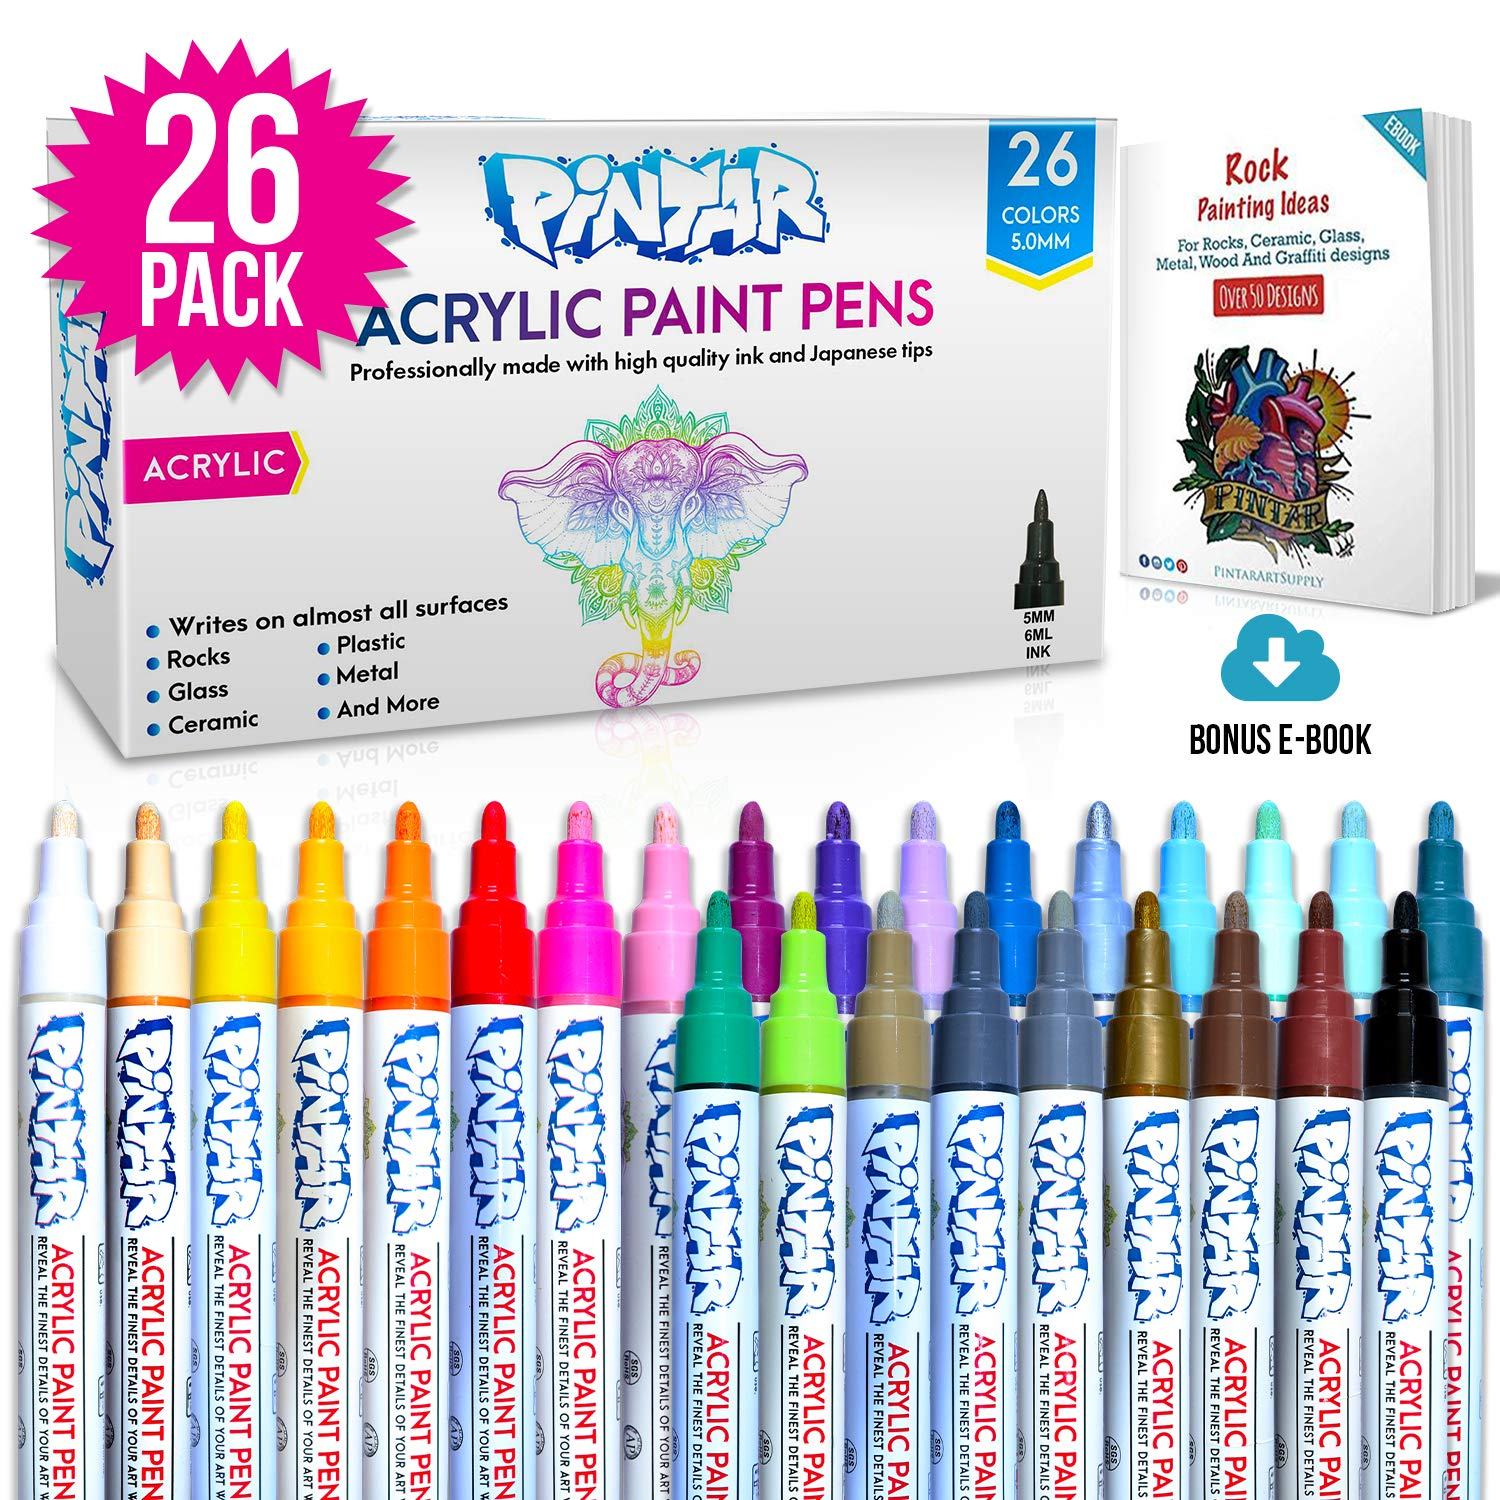 Acrylic Paint markers For Rock Painting, Stone, Ceramic, Glass, Wood - Works On Most Surfaces Water Based vibrant Colors - Water Resistant Office Supplies, Arts And Crafts (26 Colors) by PINTAR